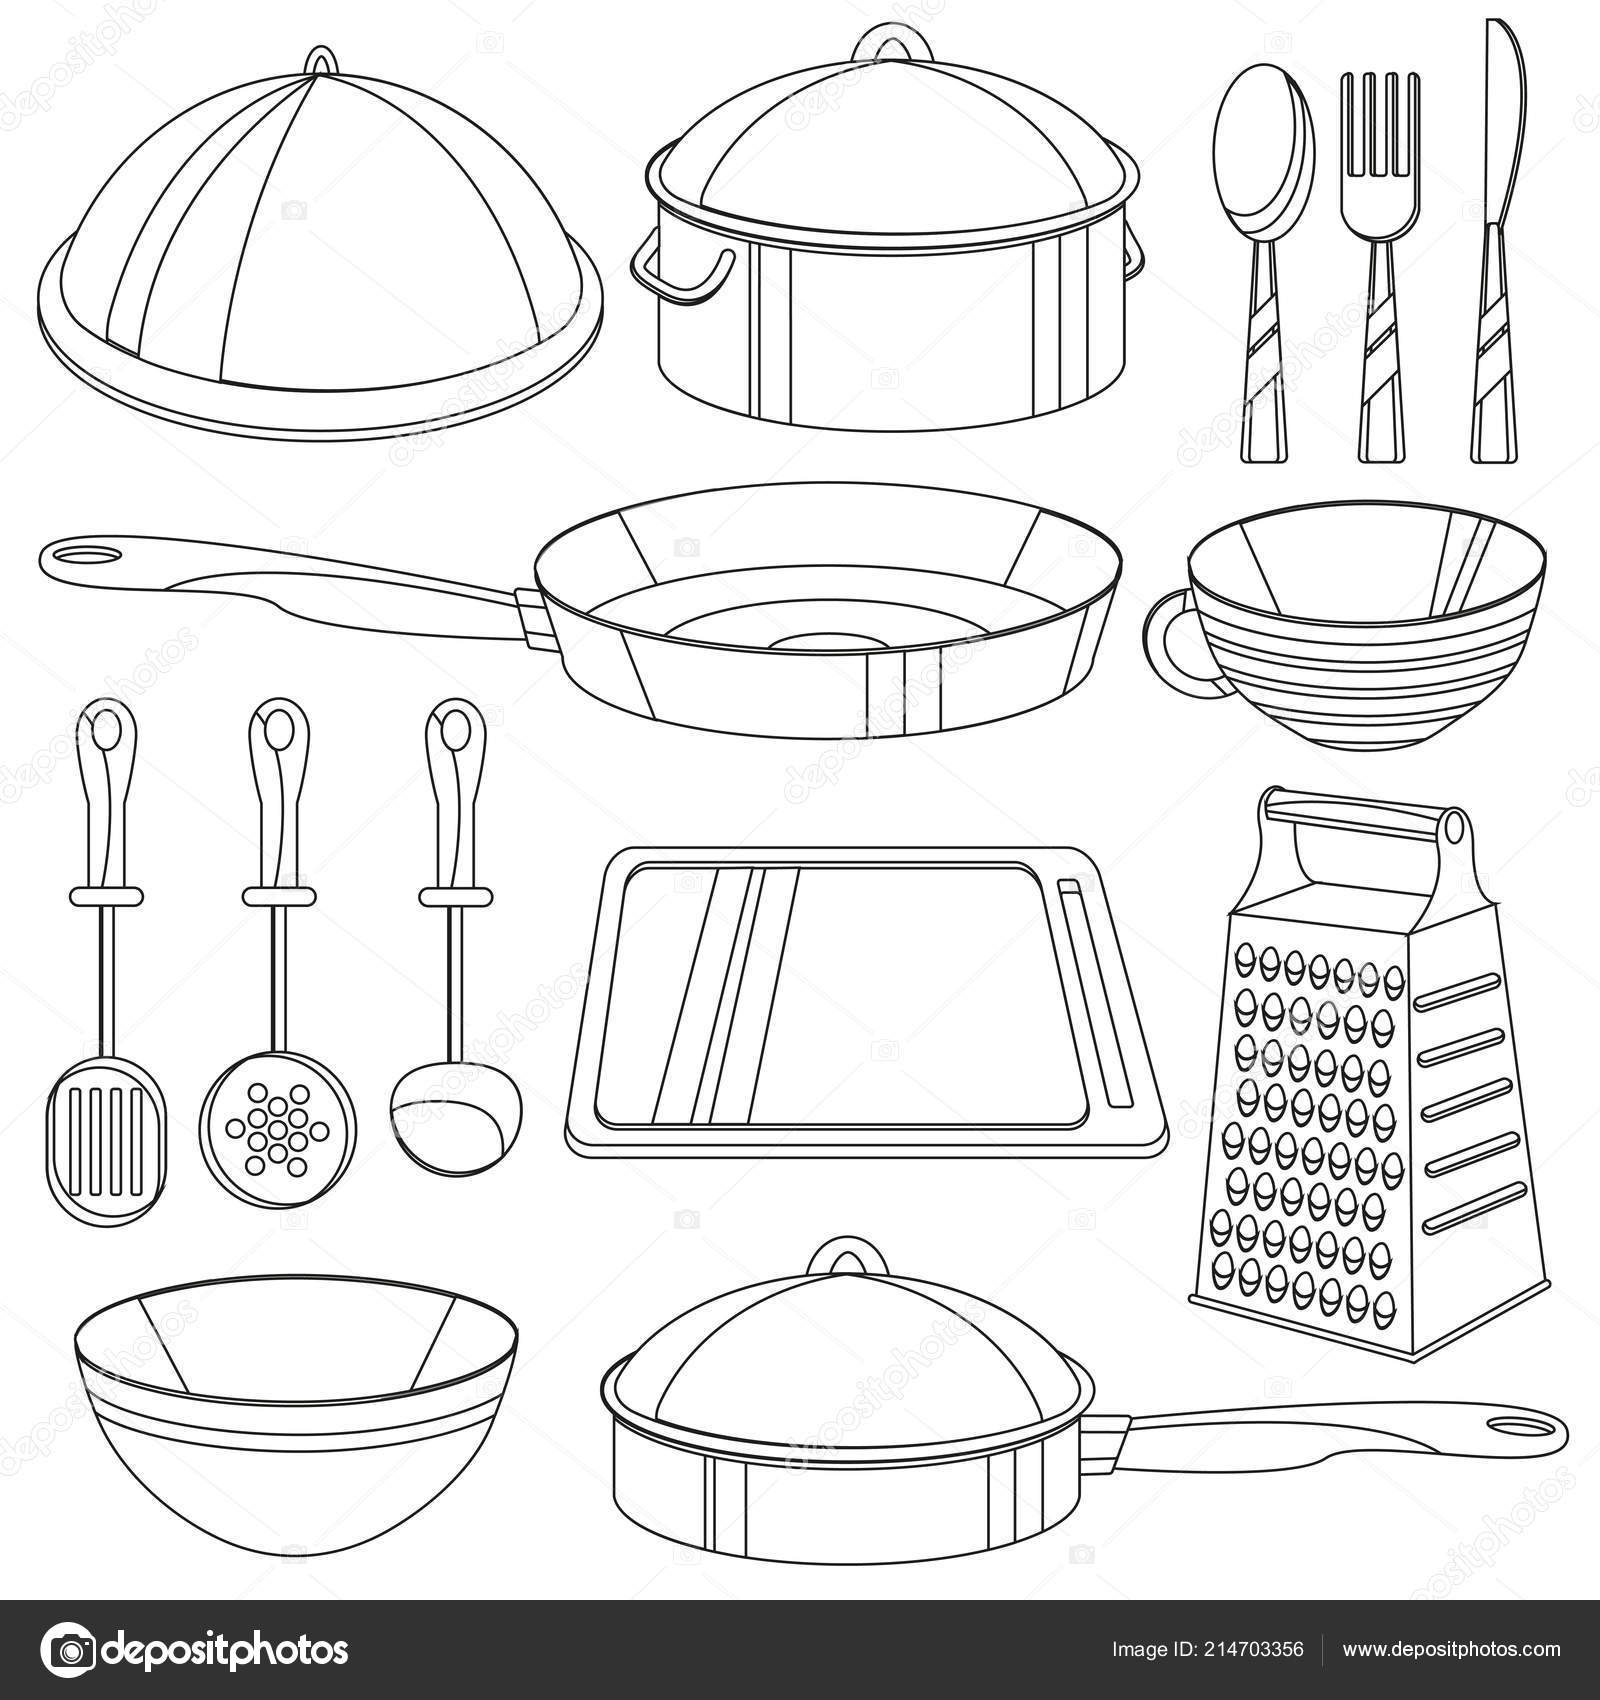 Kitchenware Coloring Book Vector Illustration For Children